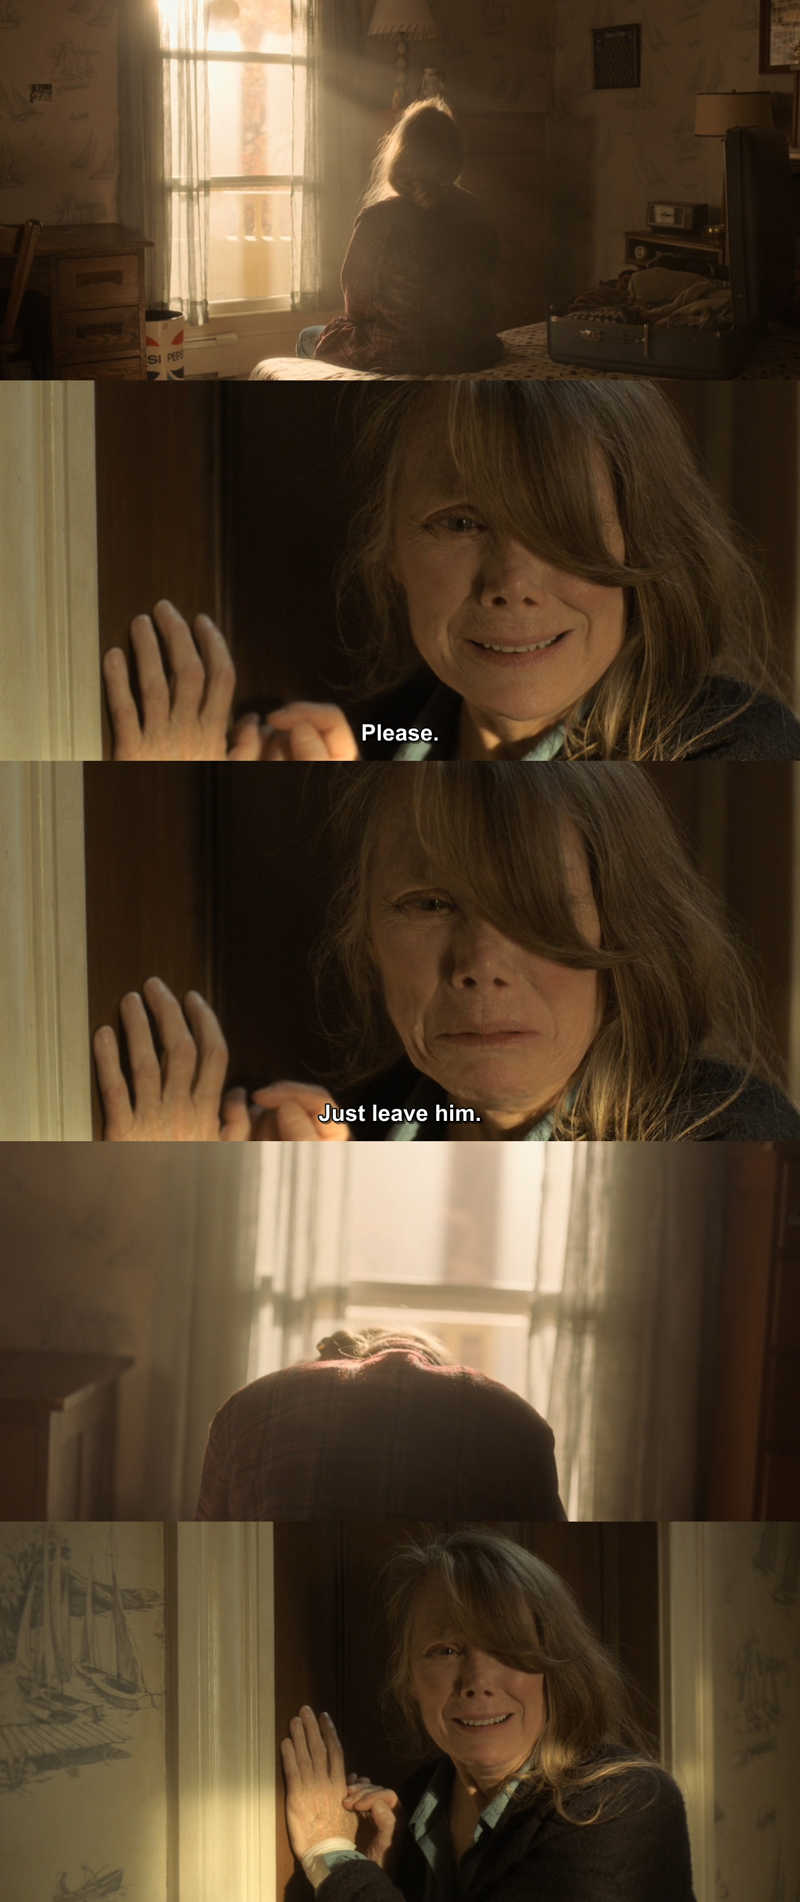 Sissy Spacek deserves Emmy nomination just for this episode! Absolutely amazing performance.